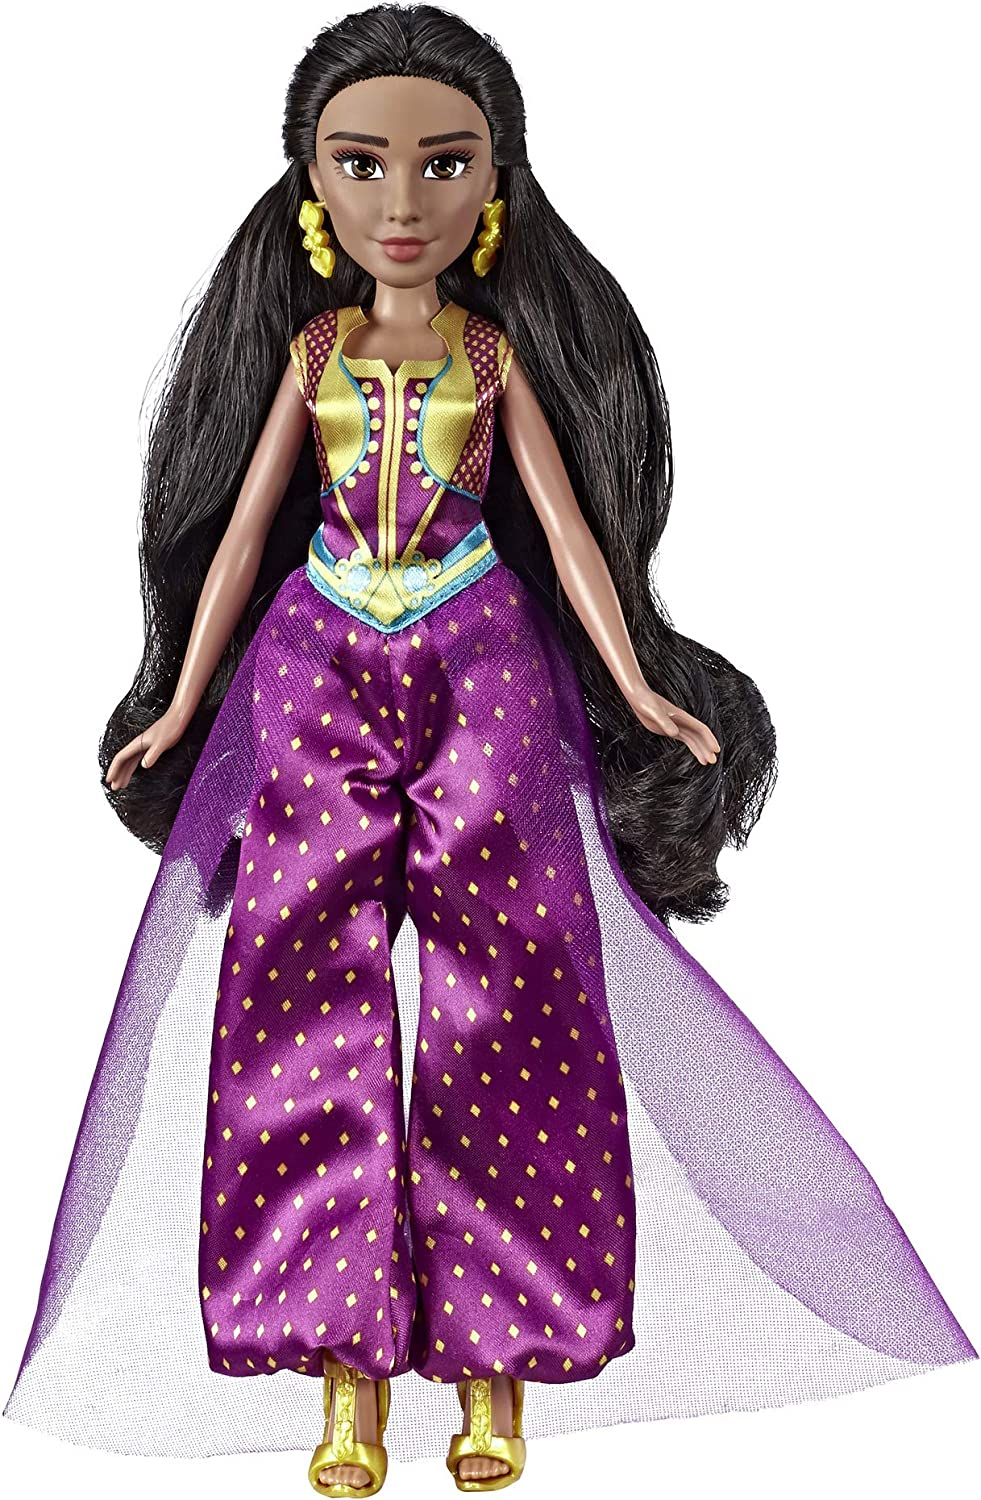 Amazon Com Disney Princess Jasmine Fashion Doll With Gown Shoes Accessories Inspired By Disney S Aladdin Live Action Movie Toy For 3 Year Olds Toys Games